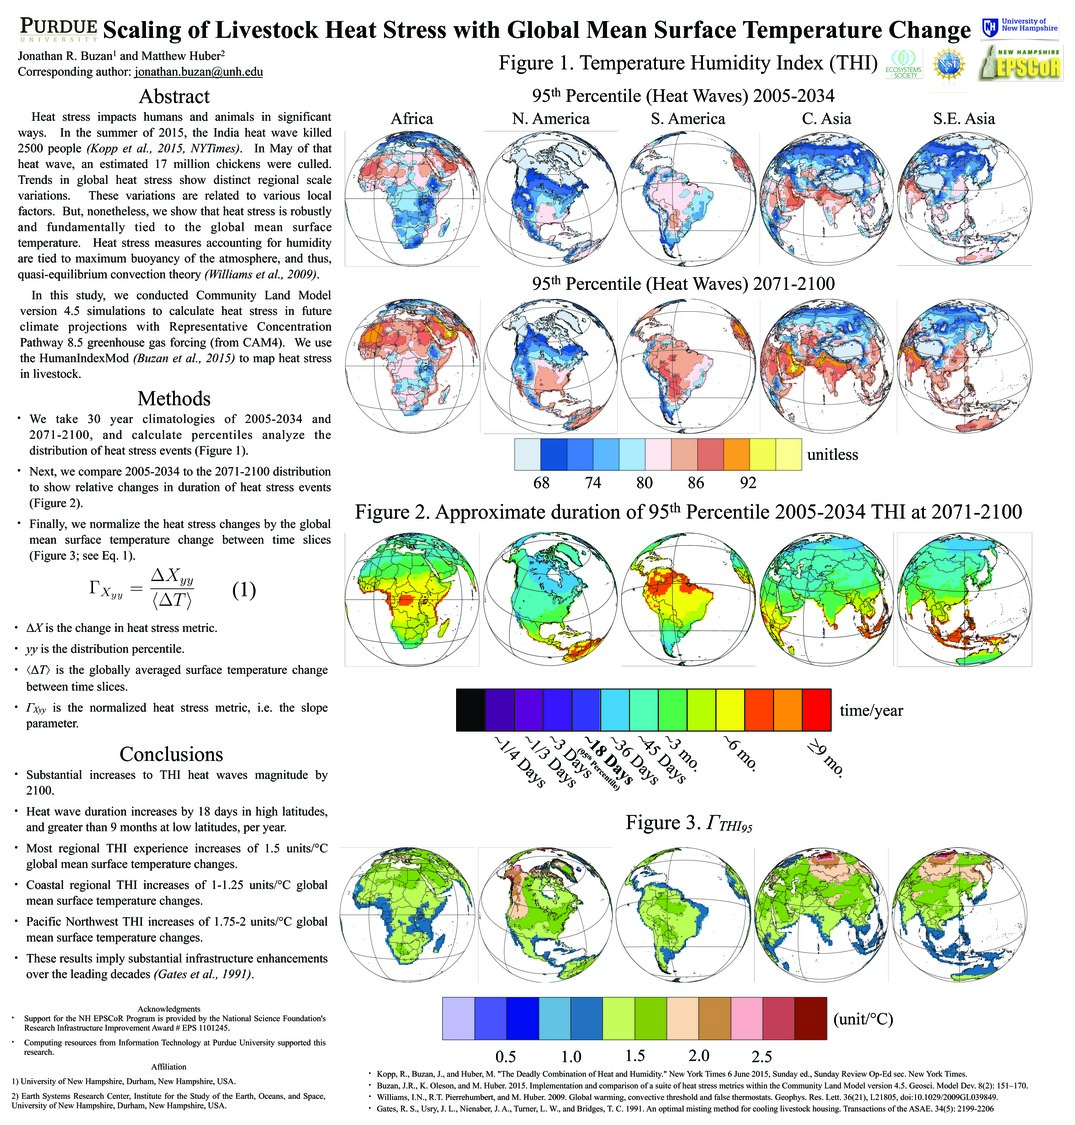 Scaling Of Livestock Heat Stress With Global Mean Surface Temperature Change by jbuzan